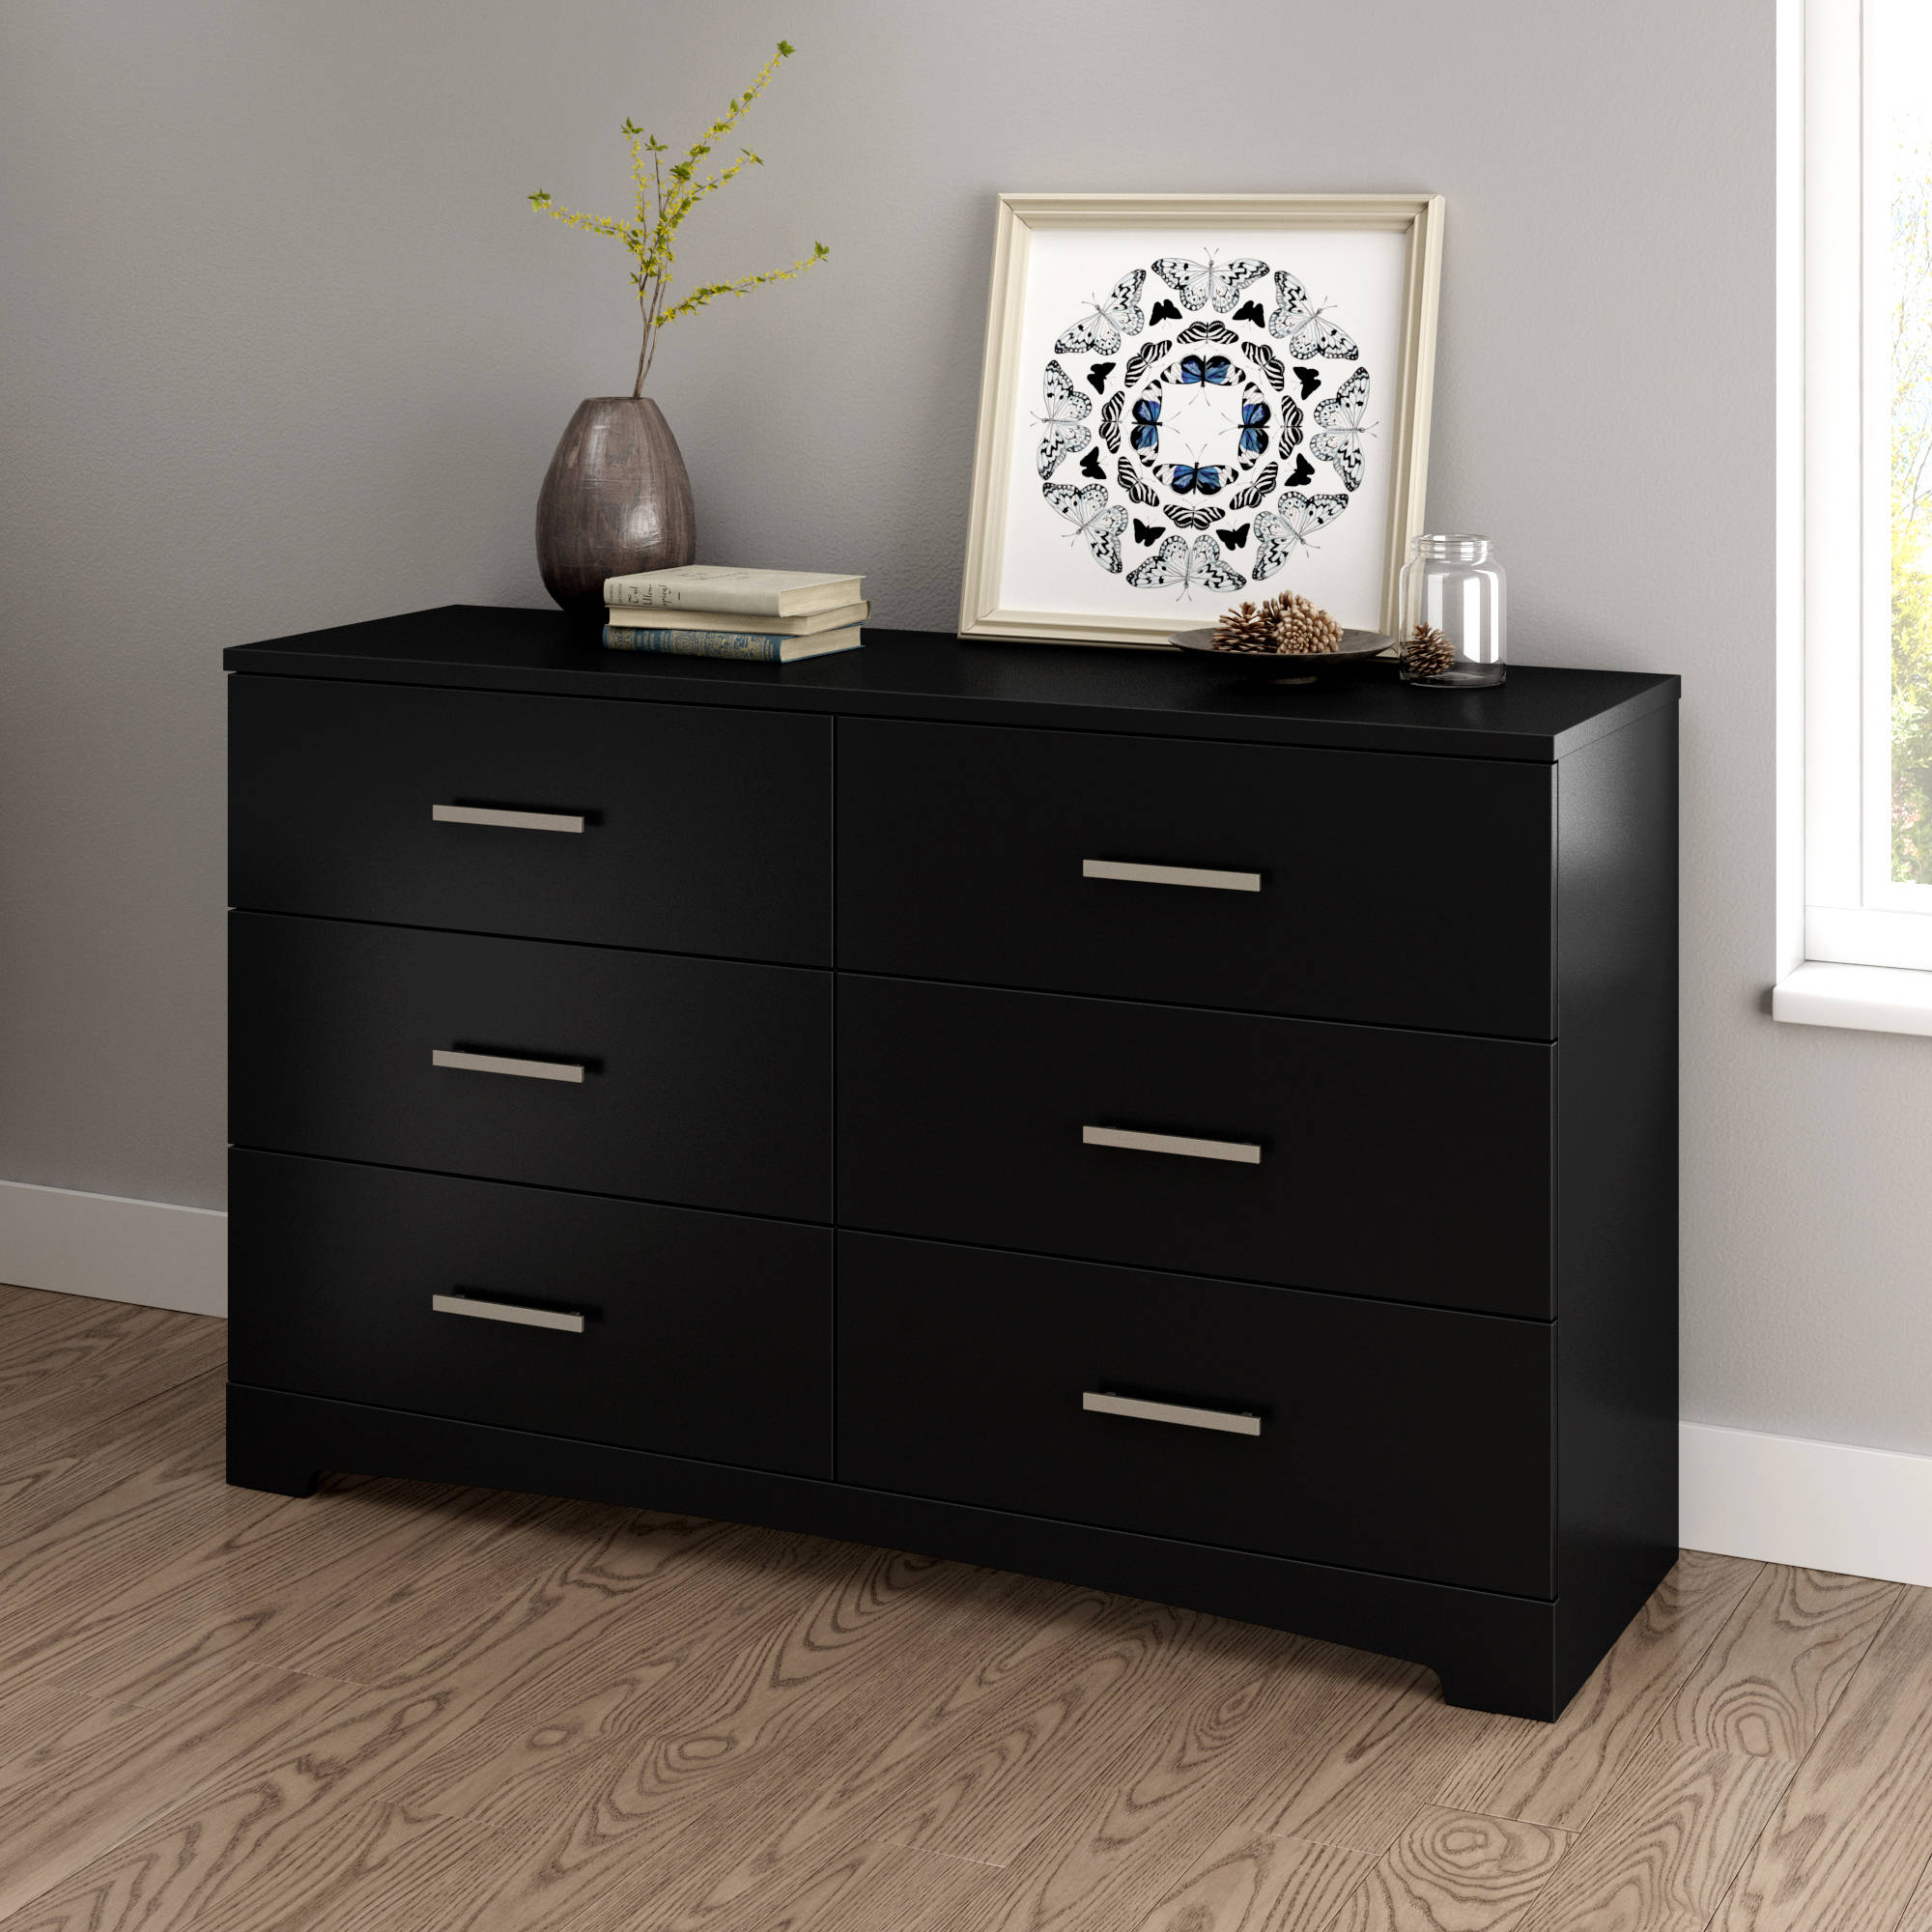 South shore soho 6 drawer double dresser multiple for Commode pas cher montreal